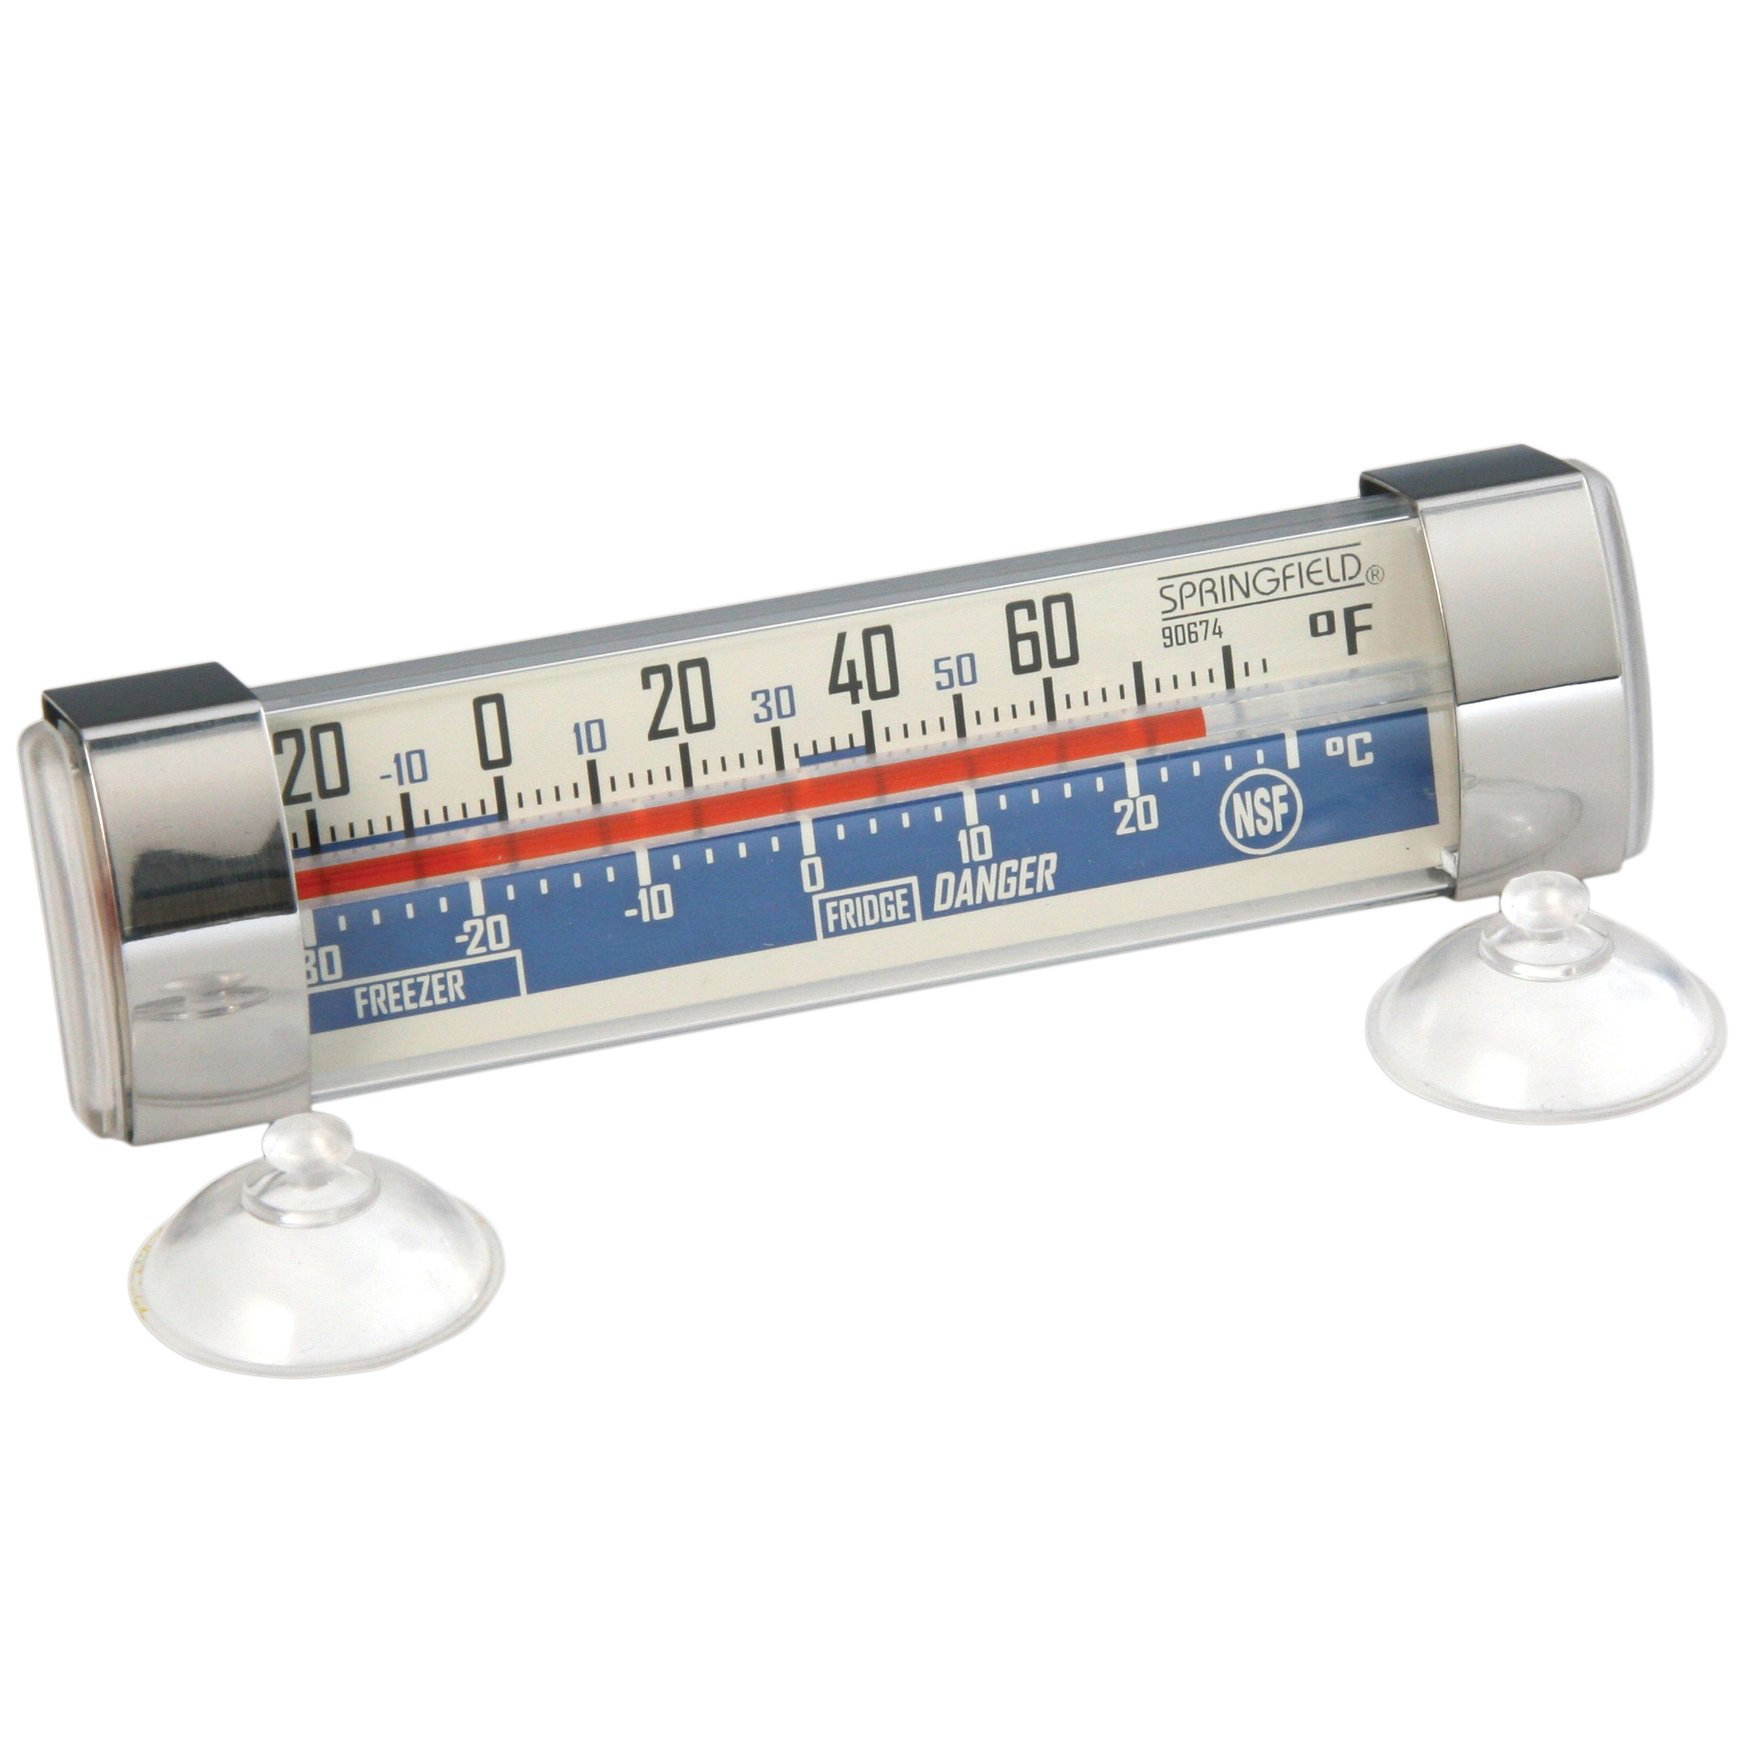 Taylor Springfield Freezer and Refrigerator Thermometer